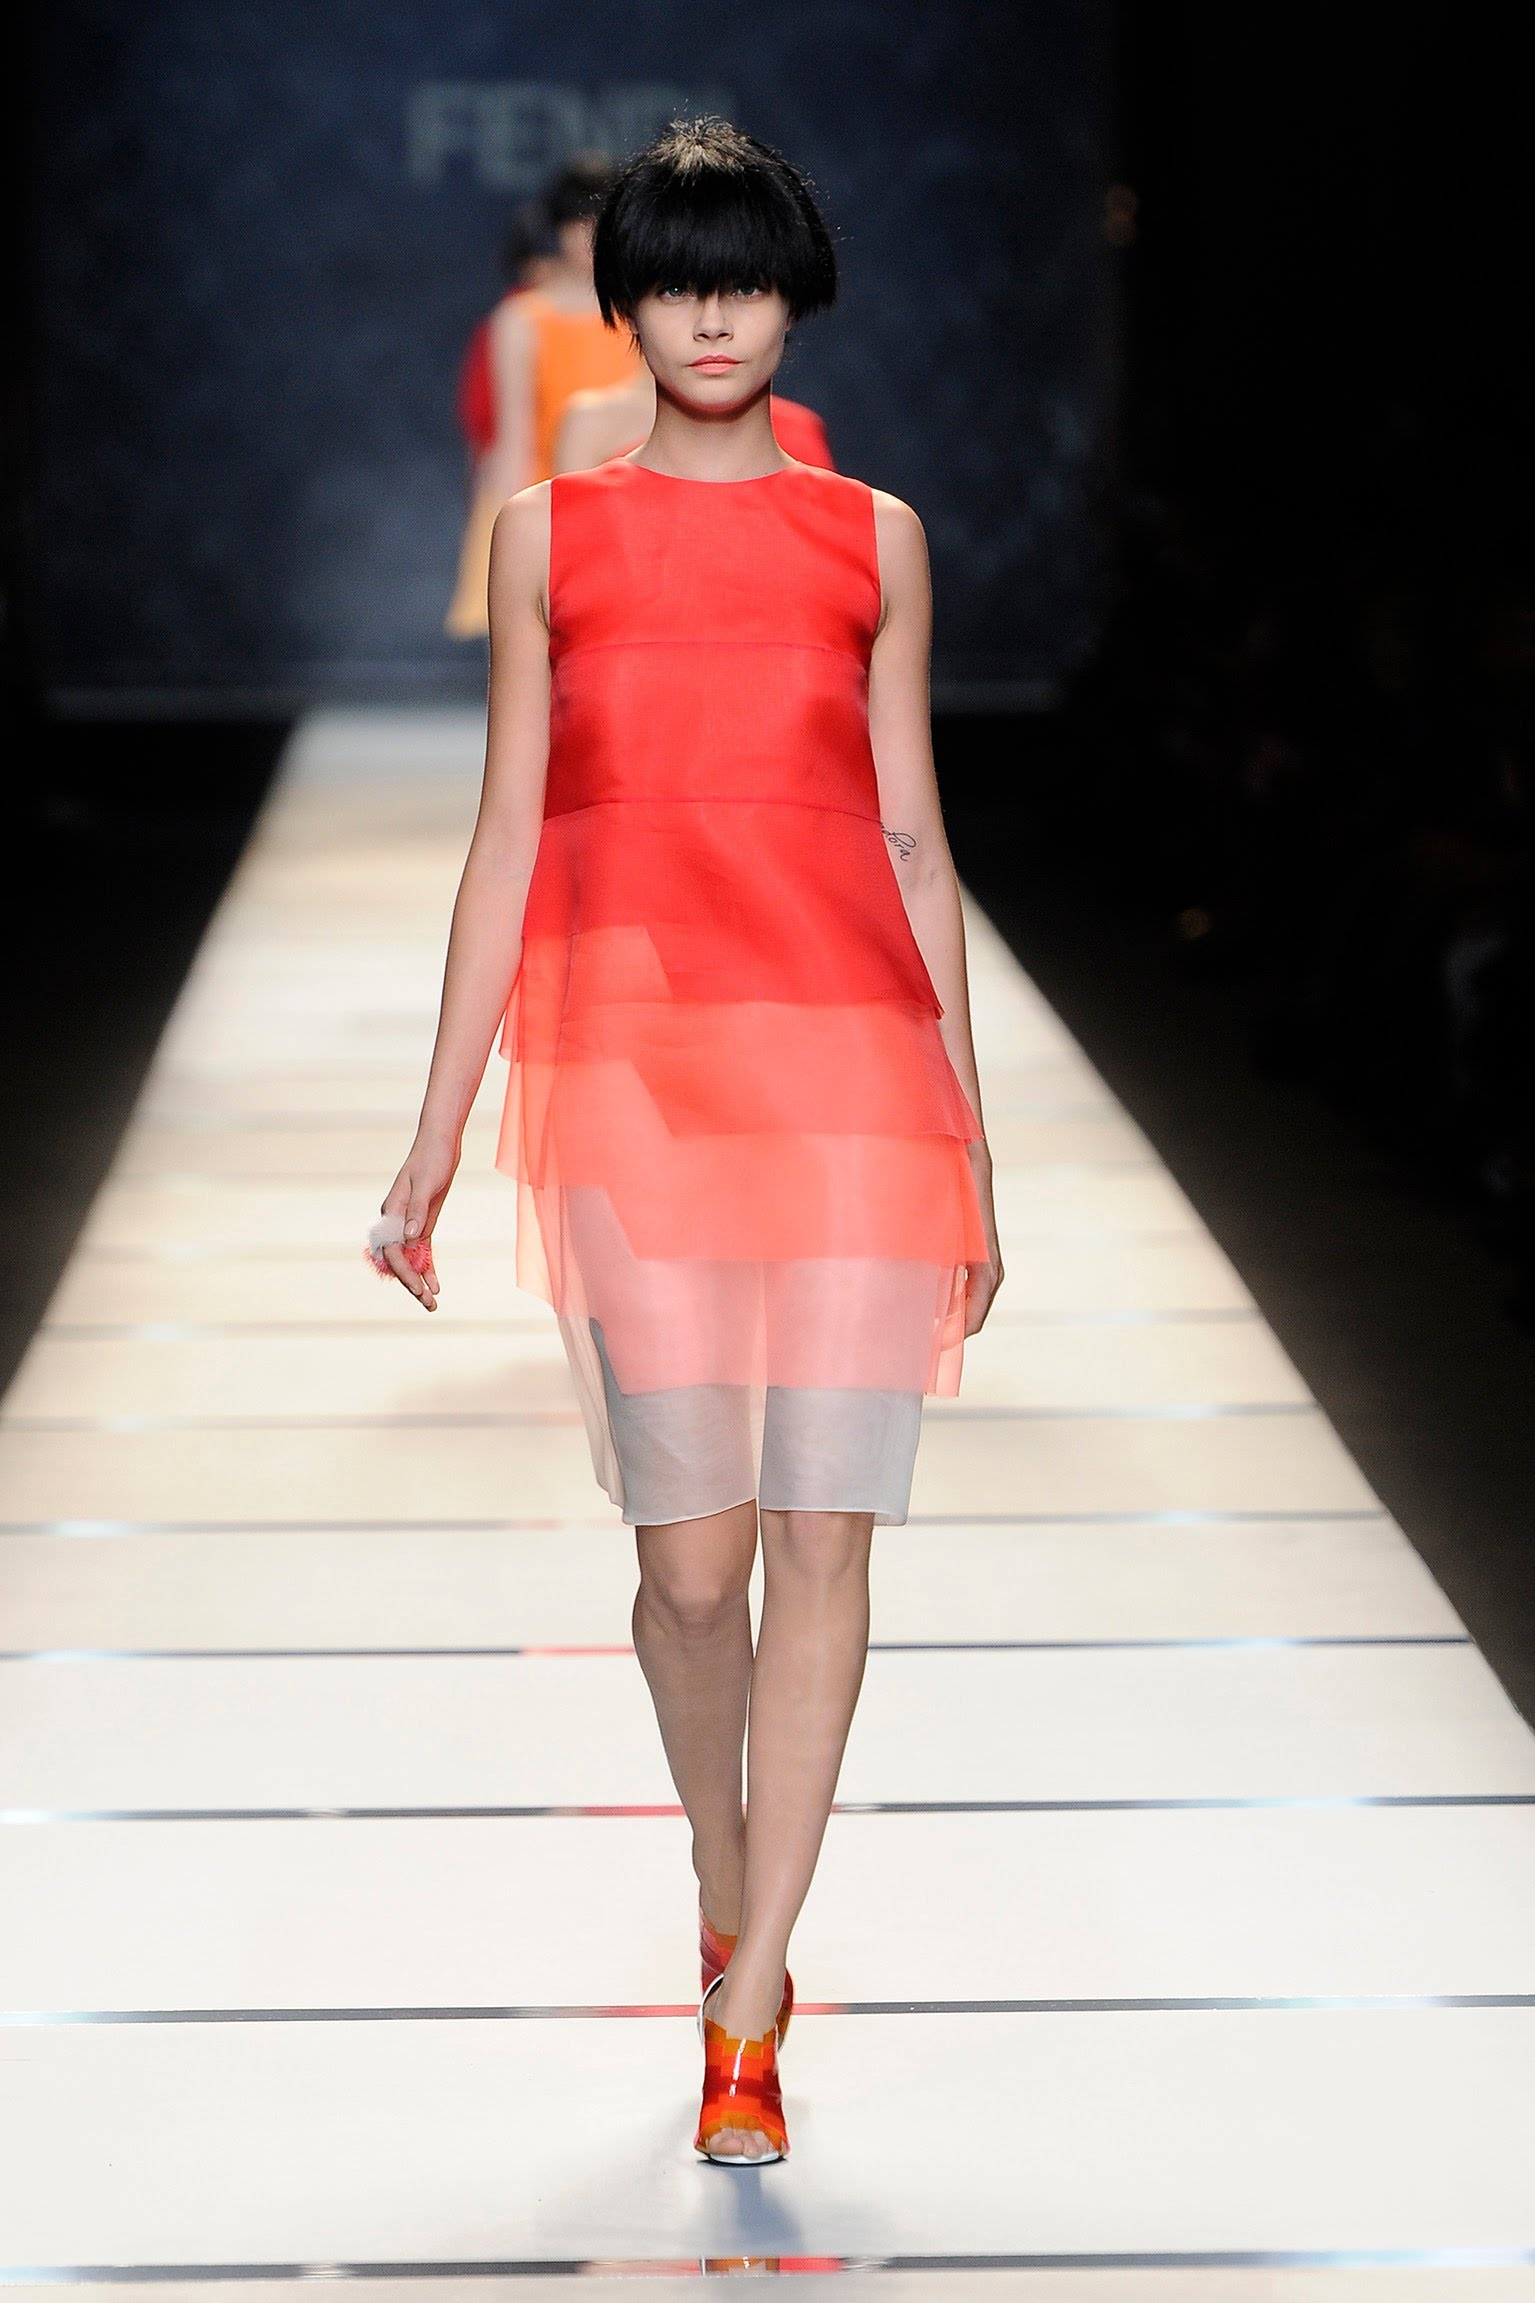 #MFW – FENDI SS 2014 COLLECTION